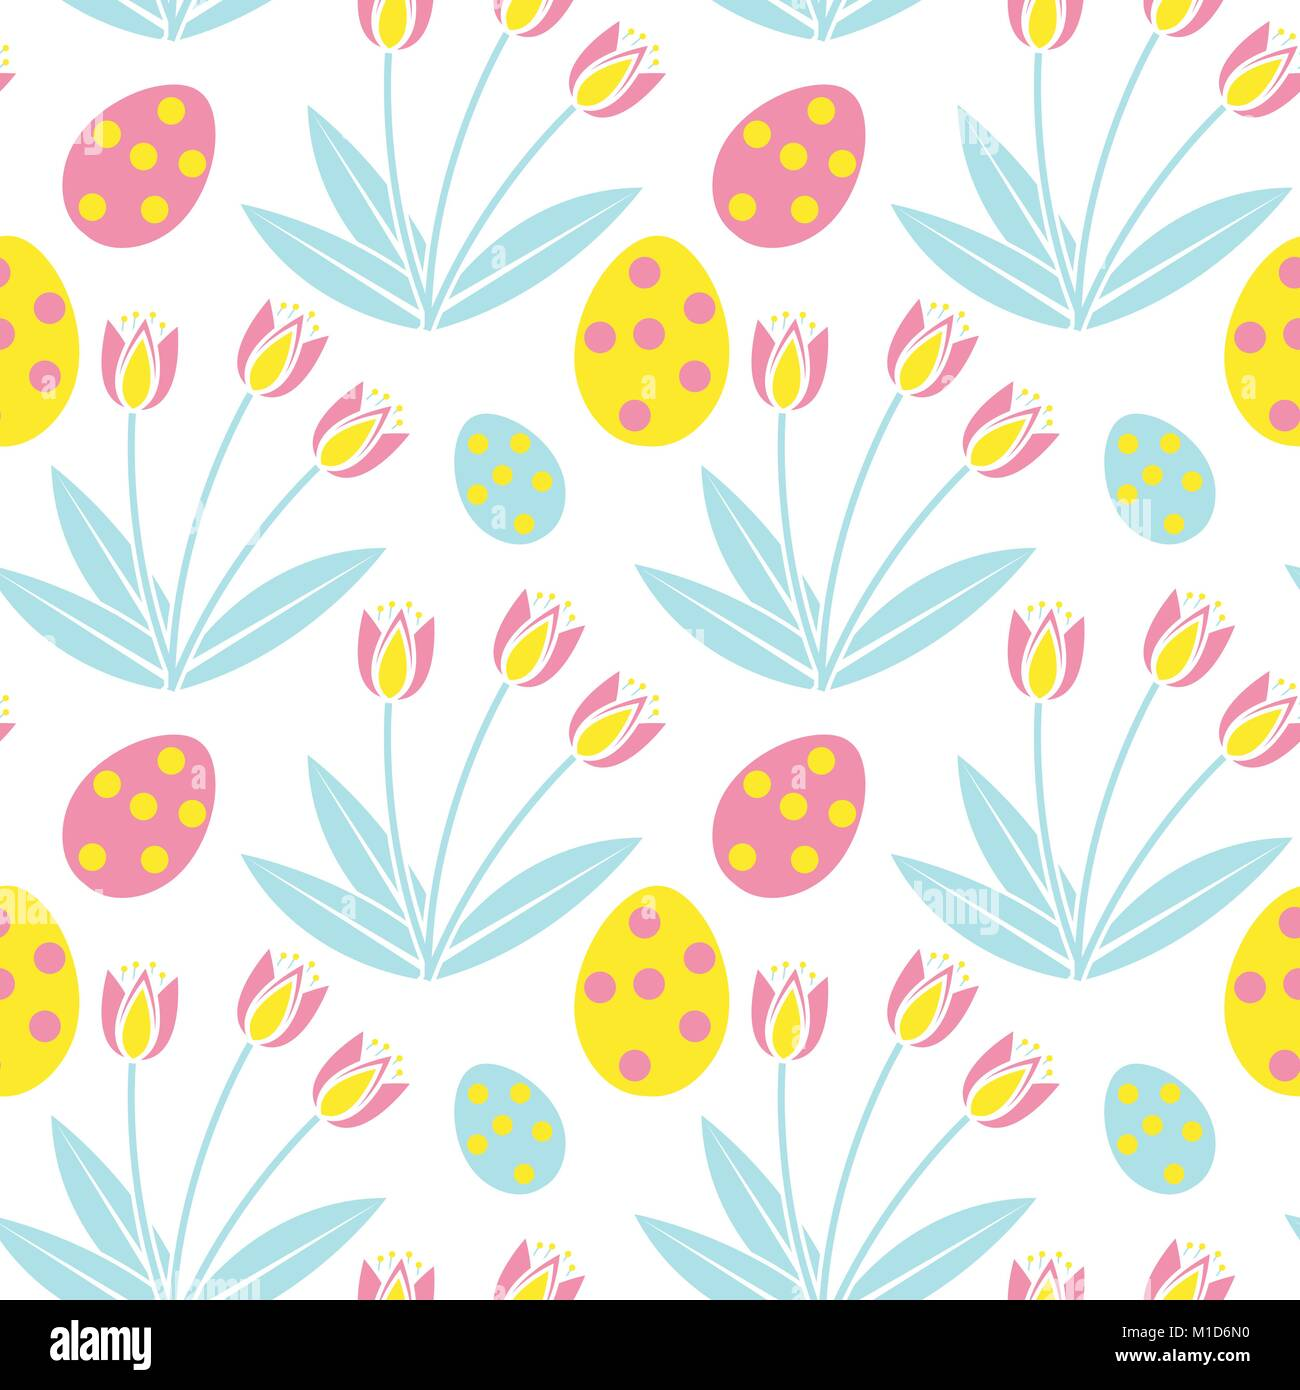 cute easter seamless pattern. spring repeating textures. children's